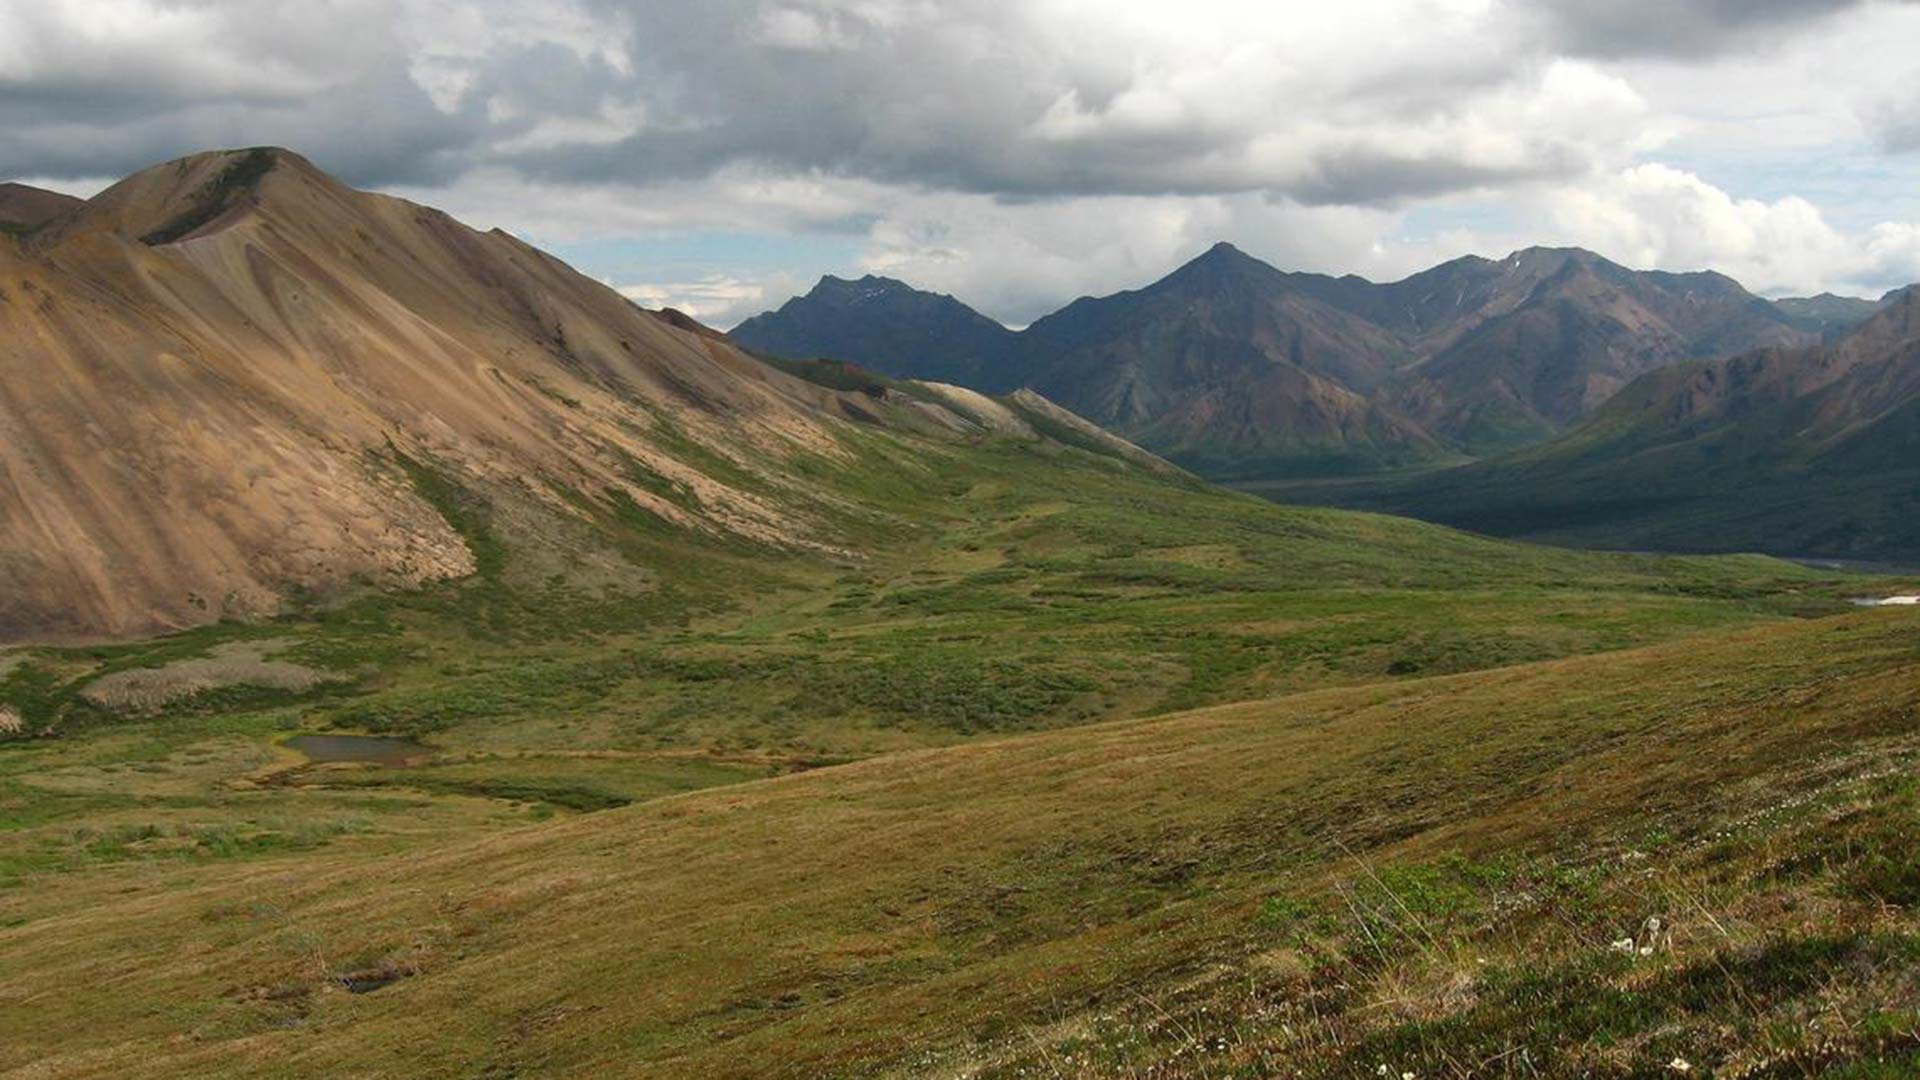 Alaskan tundra. A recent paper says preserving natural ecosystems, like tundra, is an important part of meeting climate goals.